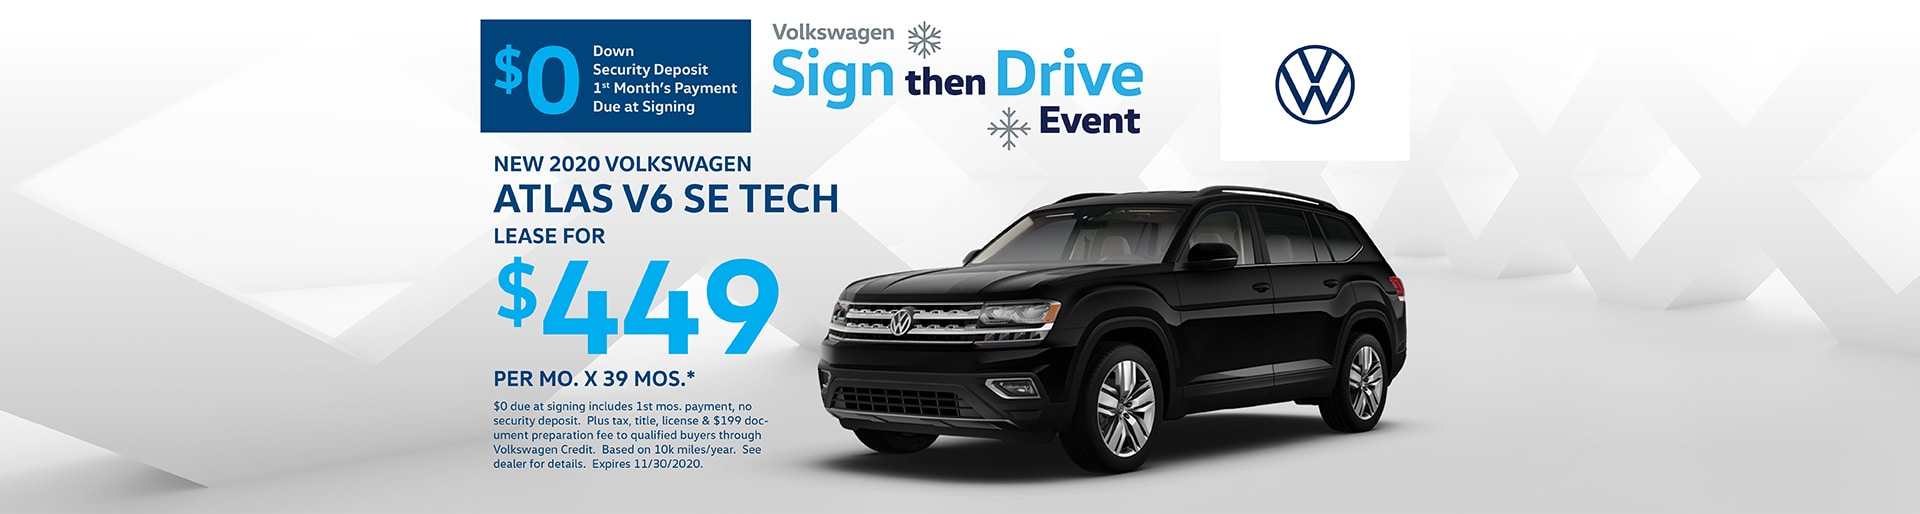 2020 Volkswagen Atlas Special Offer | Merrillville, IN